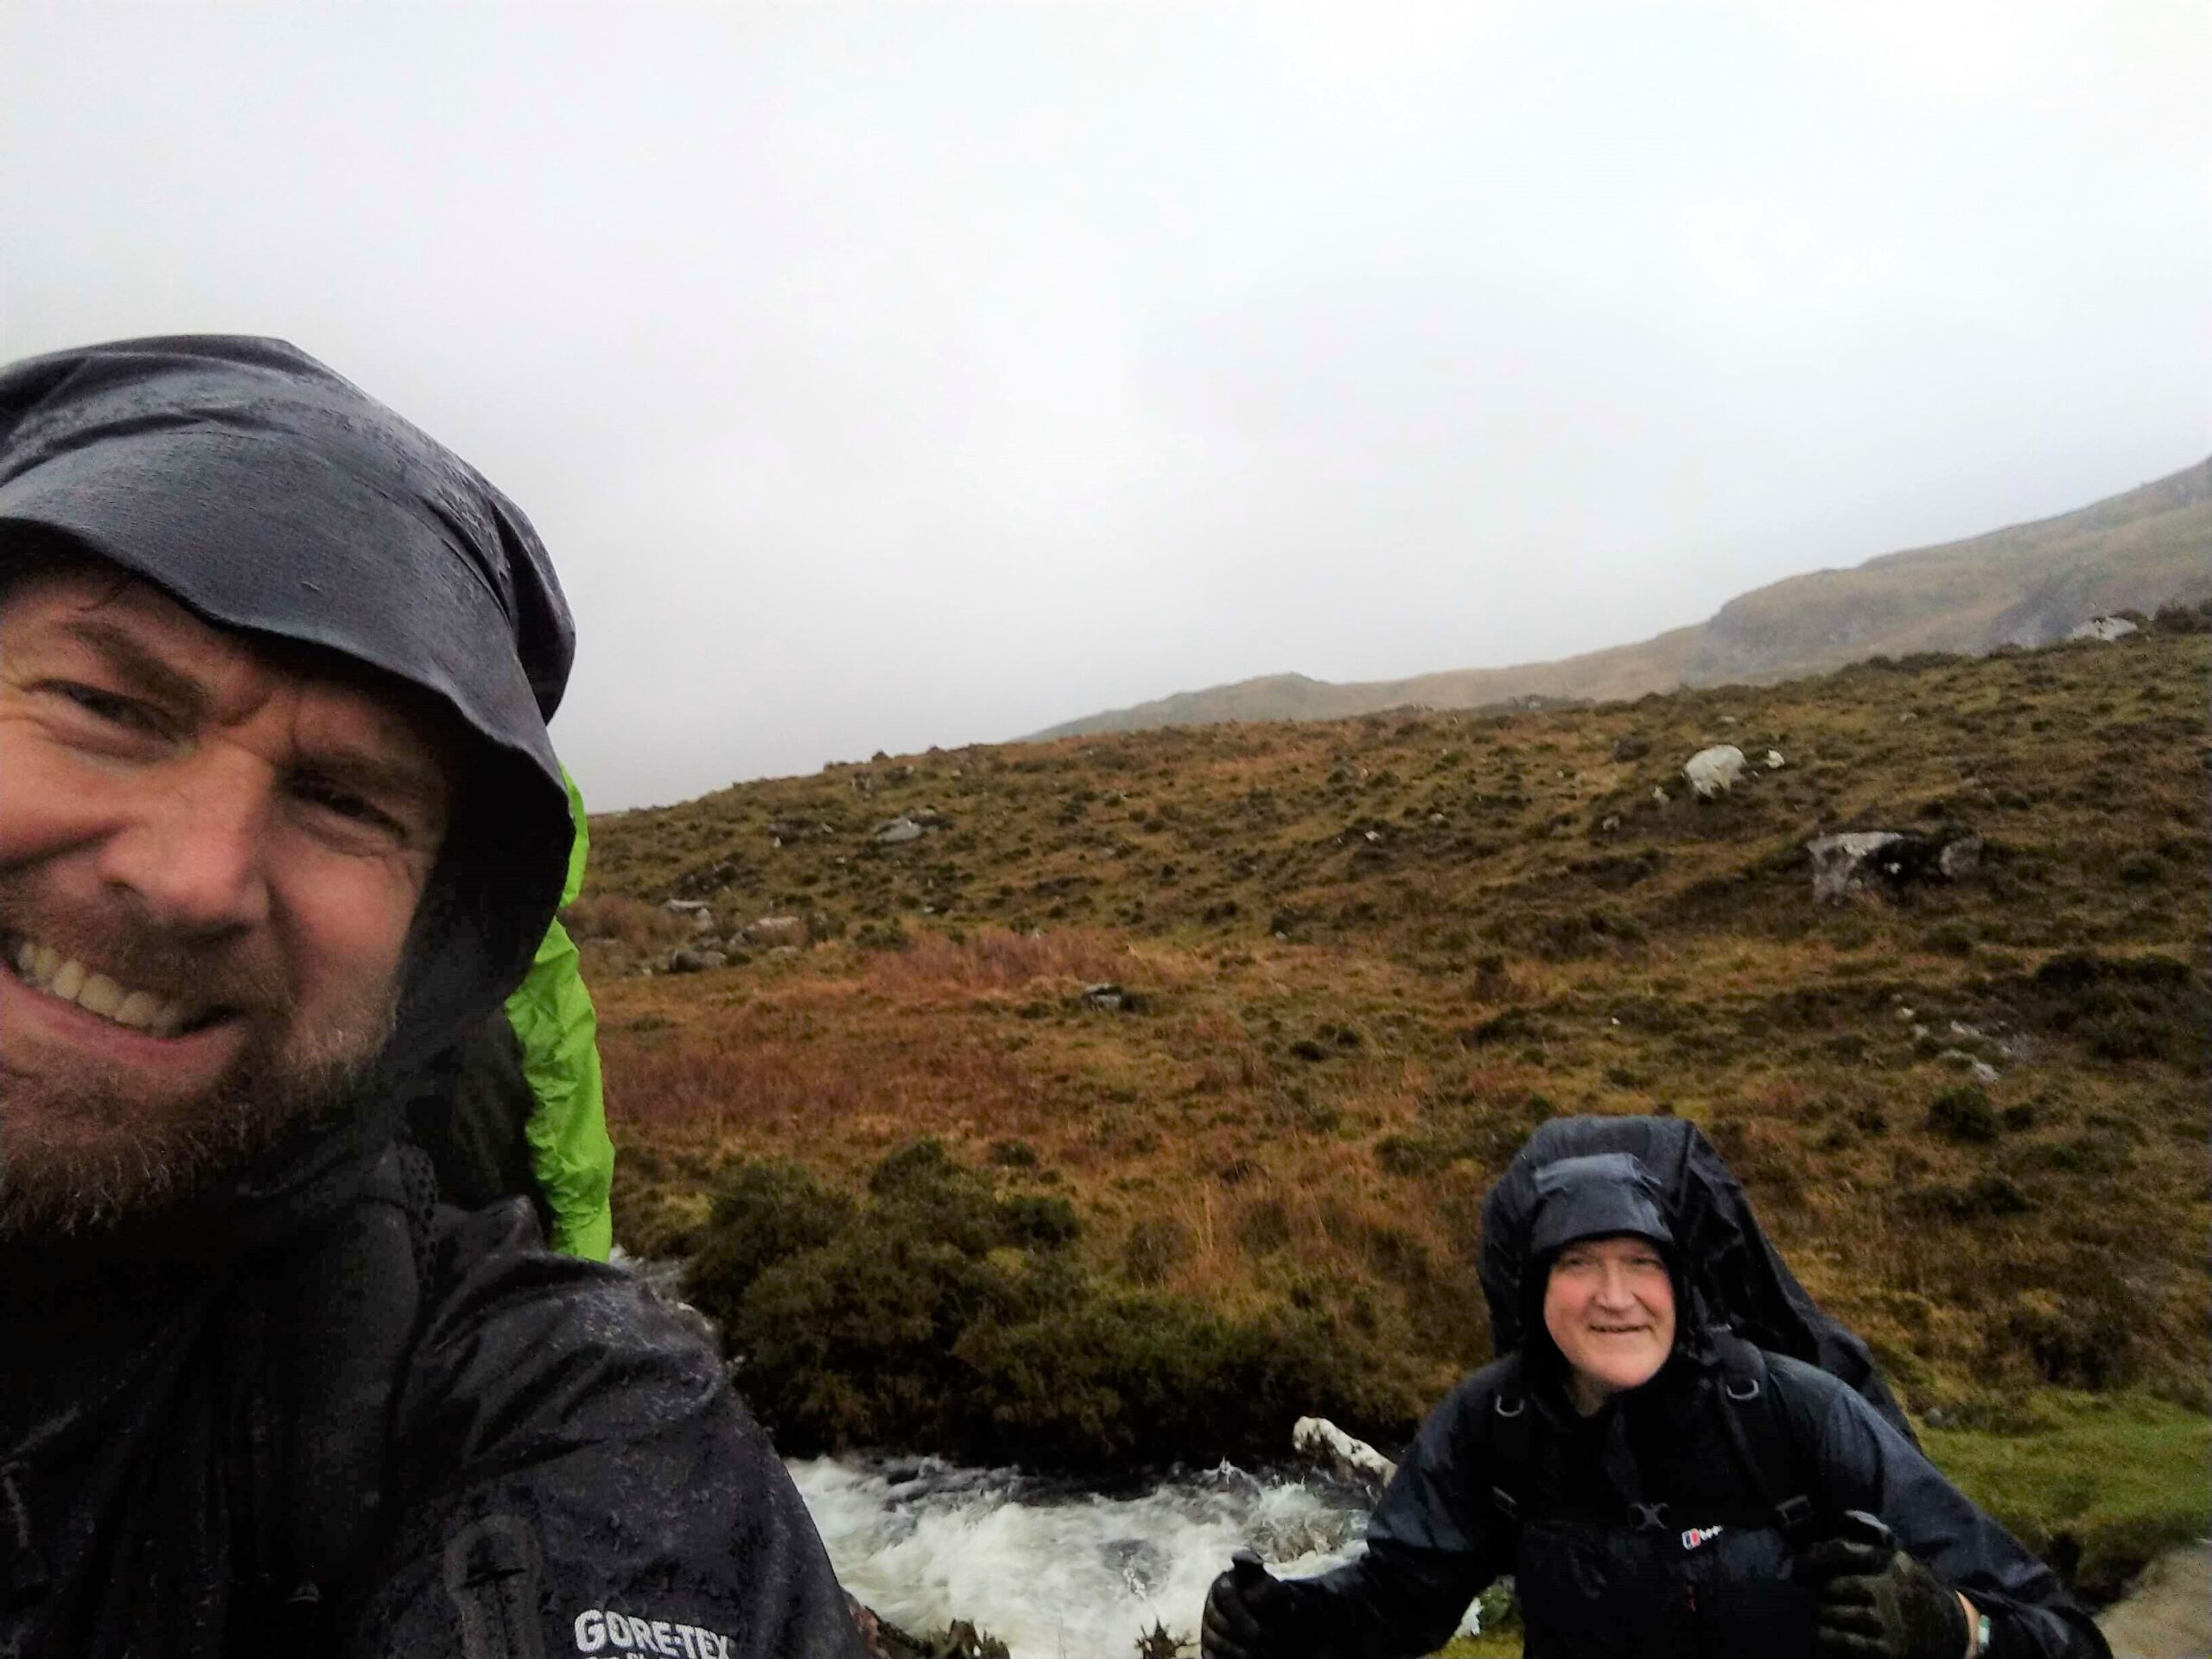 Fundraiser Karl completes epic challenge for North Wales abuse charity